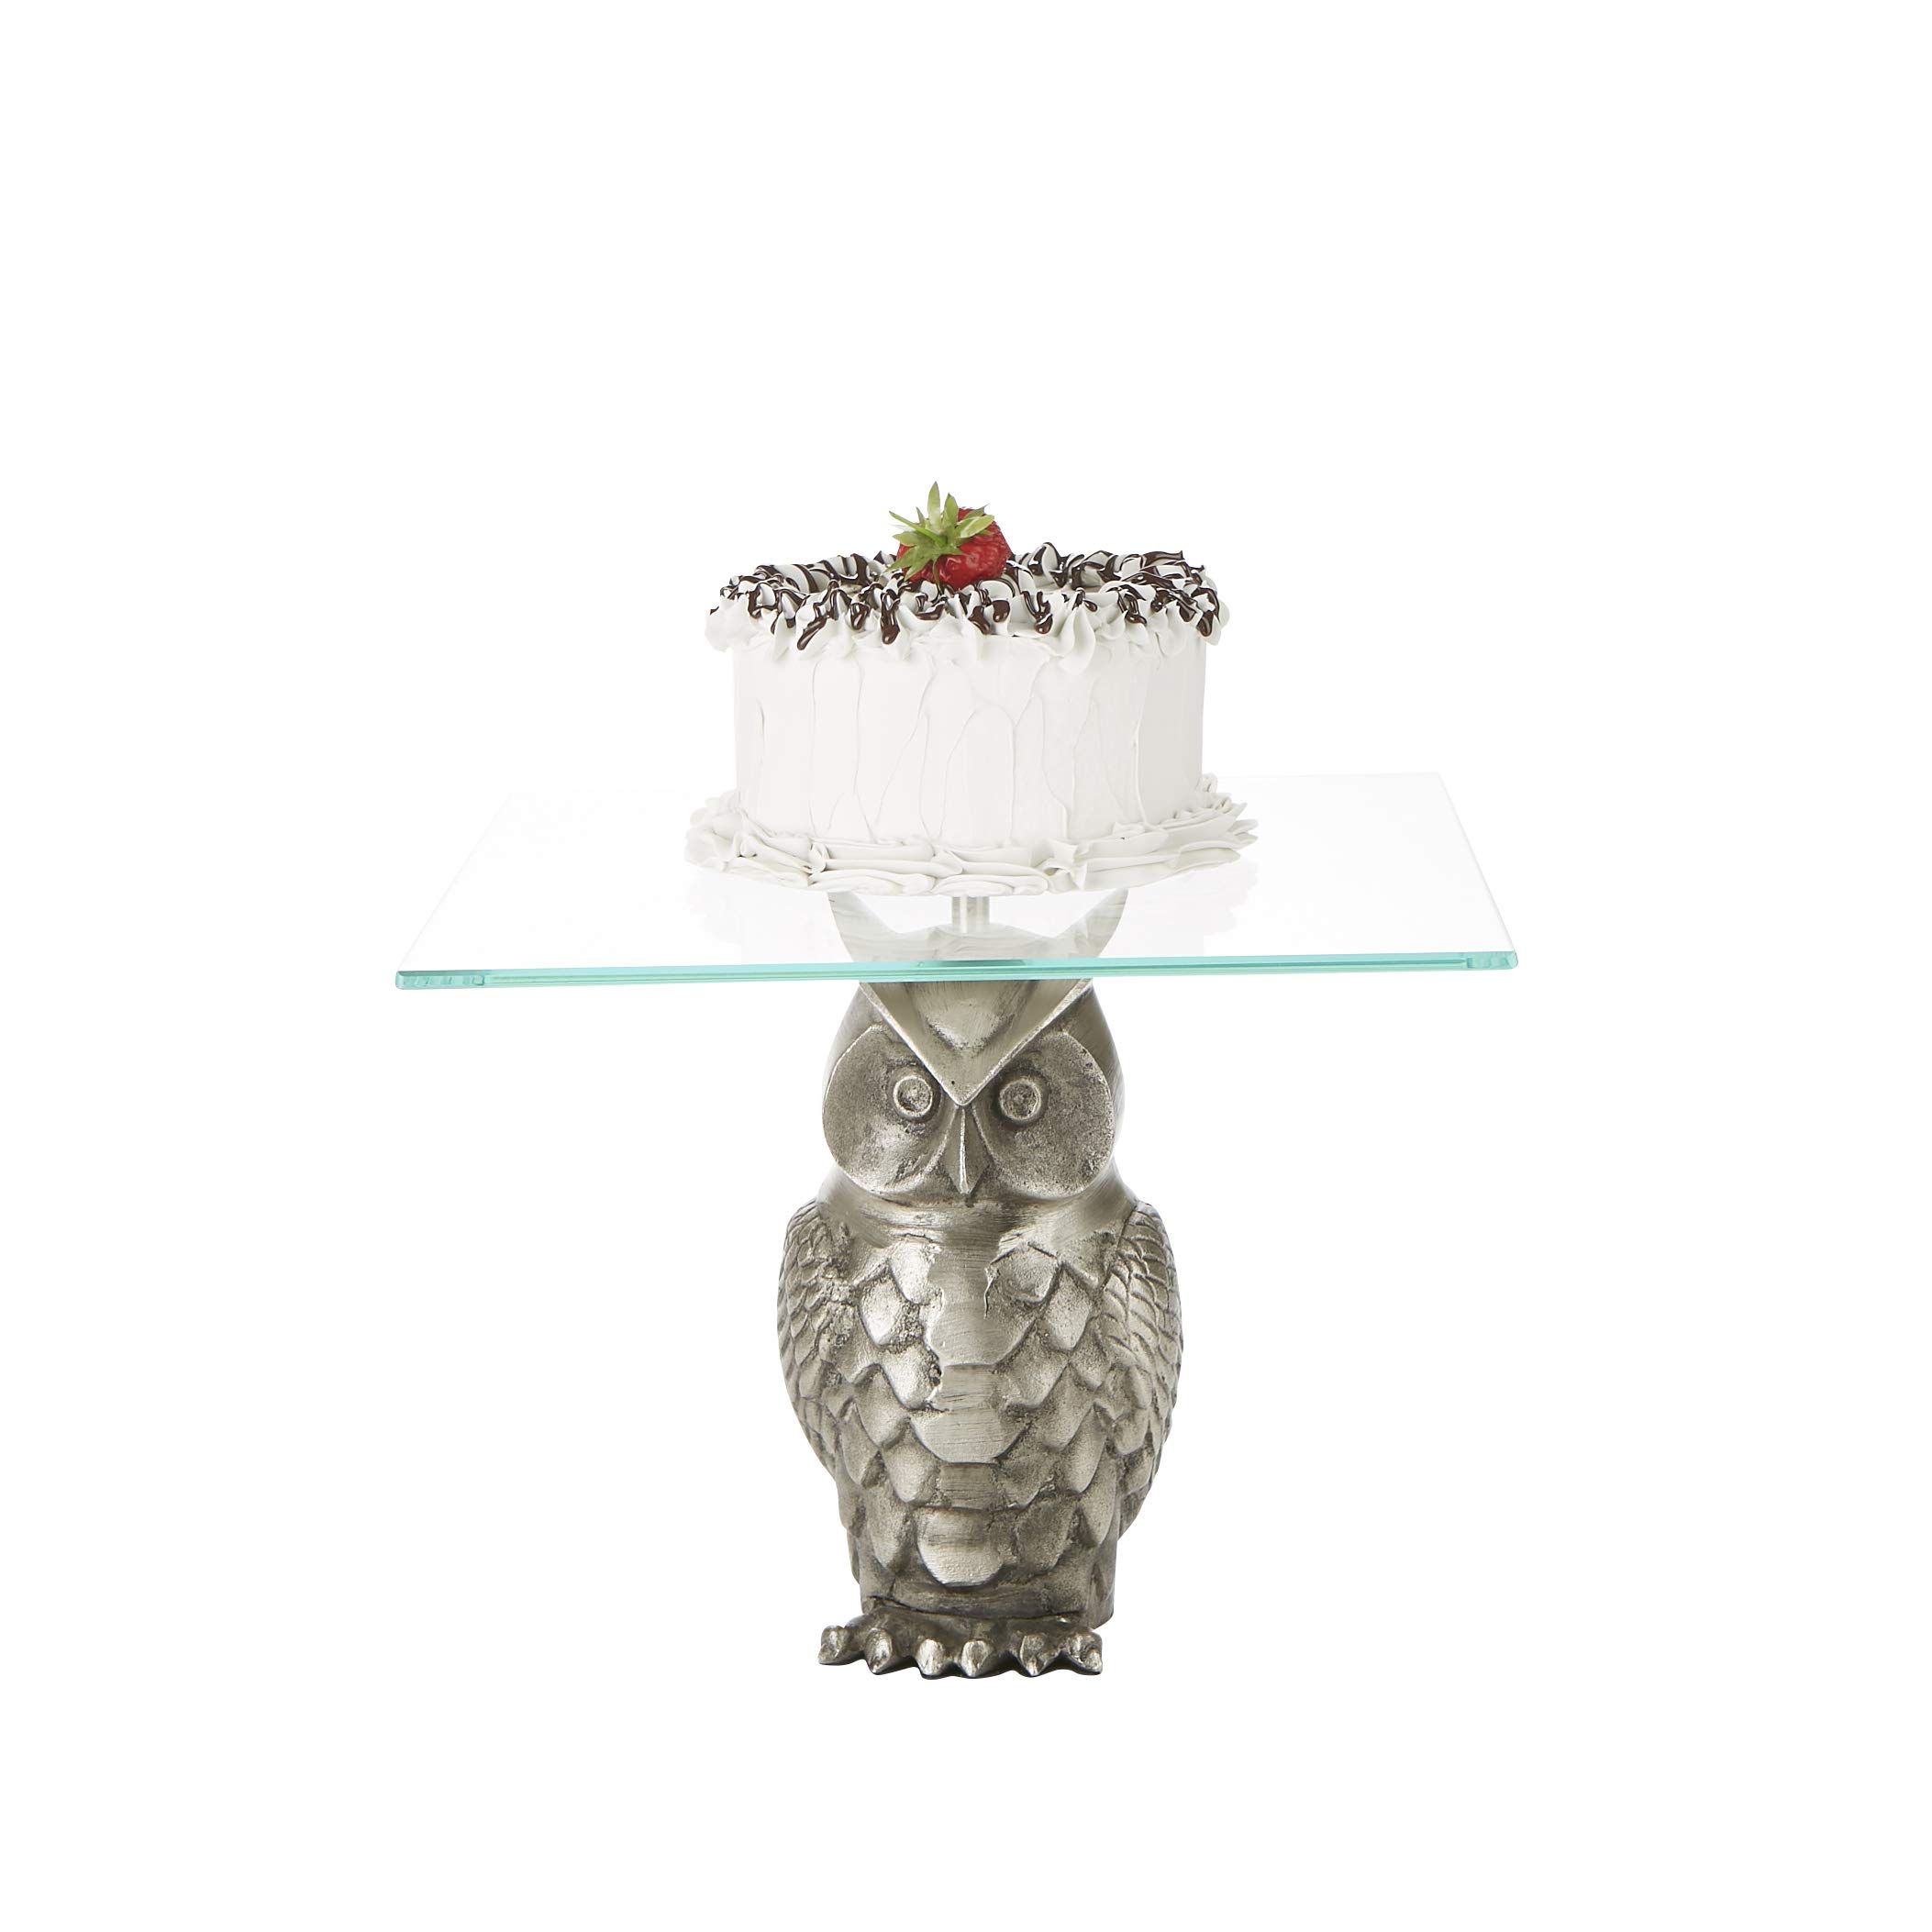 Mind Reader OWLCAKE-SIL Owl, Party Cake, Cupcake Holder, Tree Tower Stand, Tiered Serving Dessert Display Tray, Silver, One Size,